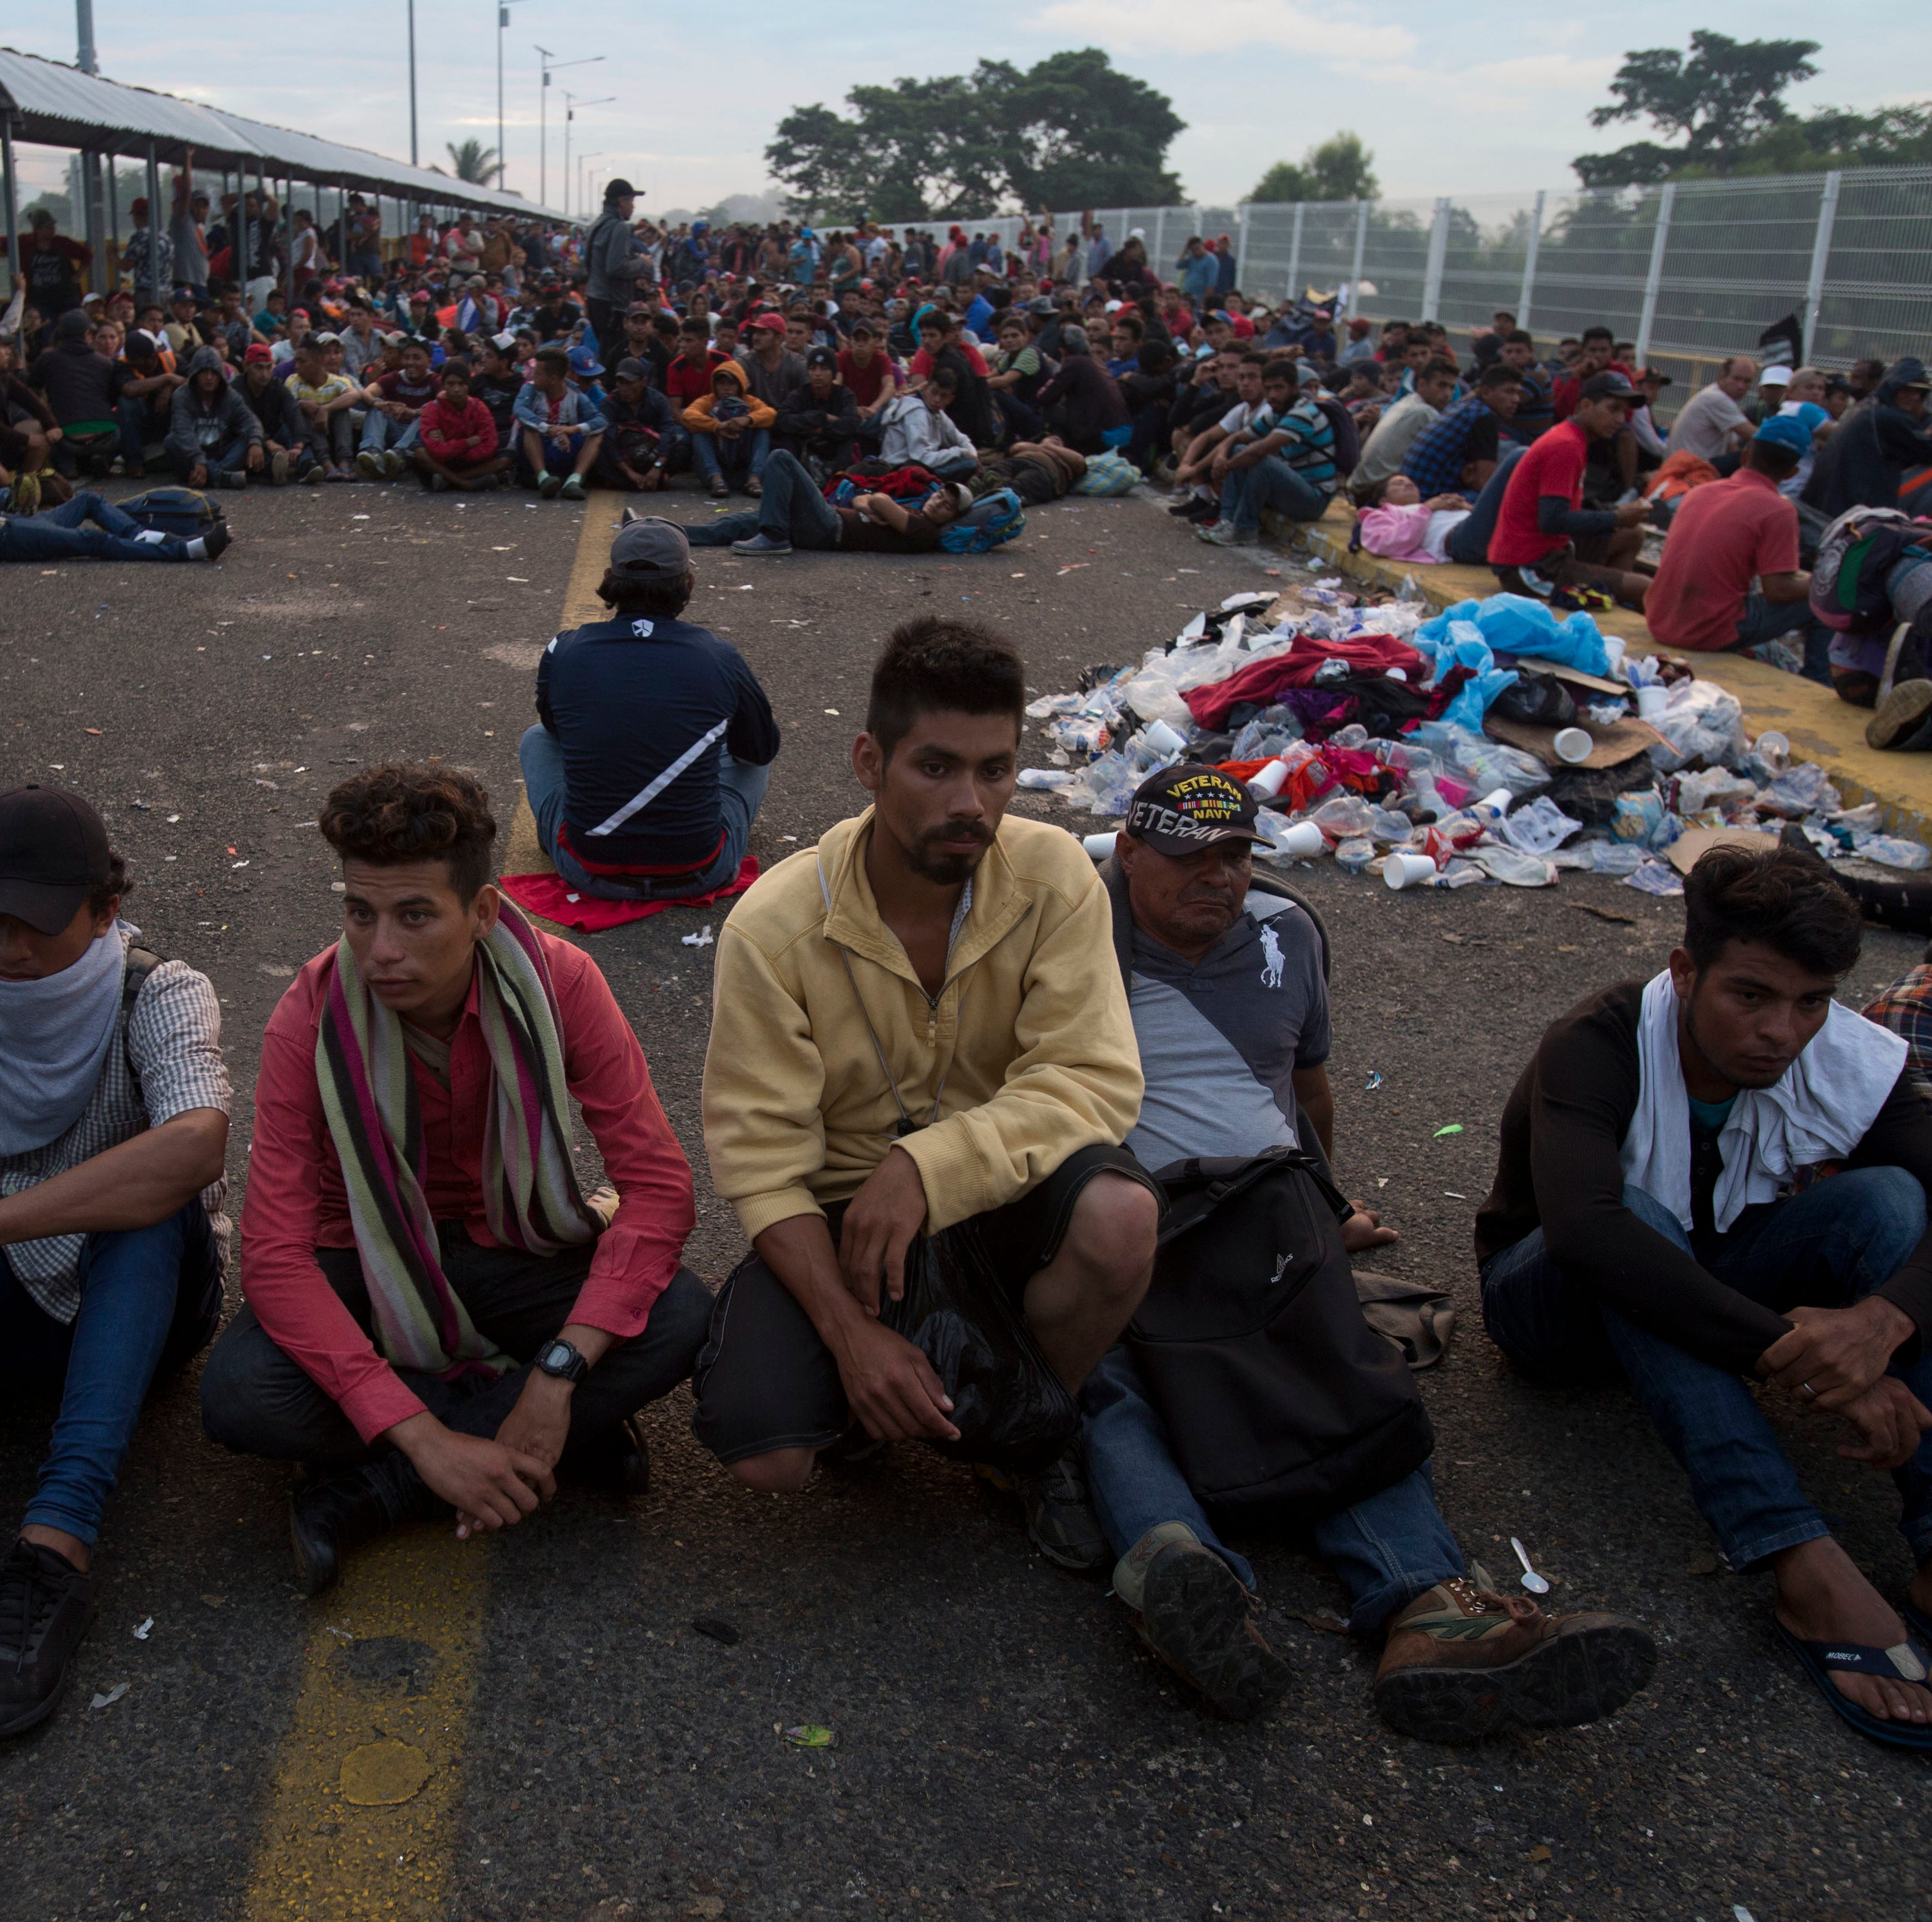 'There's no turning back': Migrant caravan stuck on Mexico border vows not to be deterred